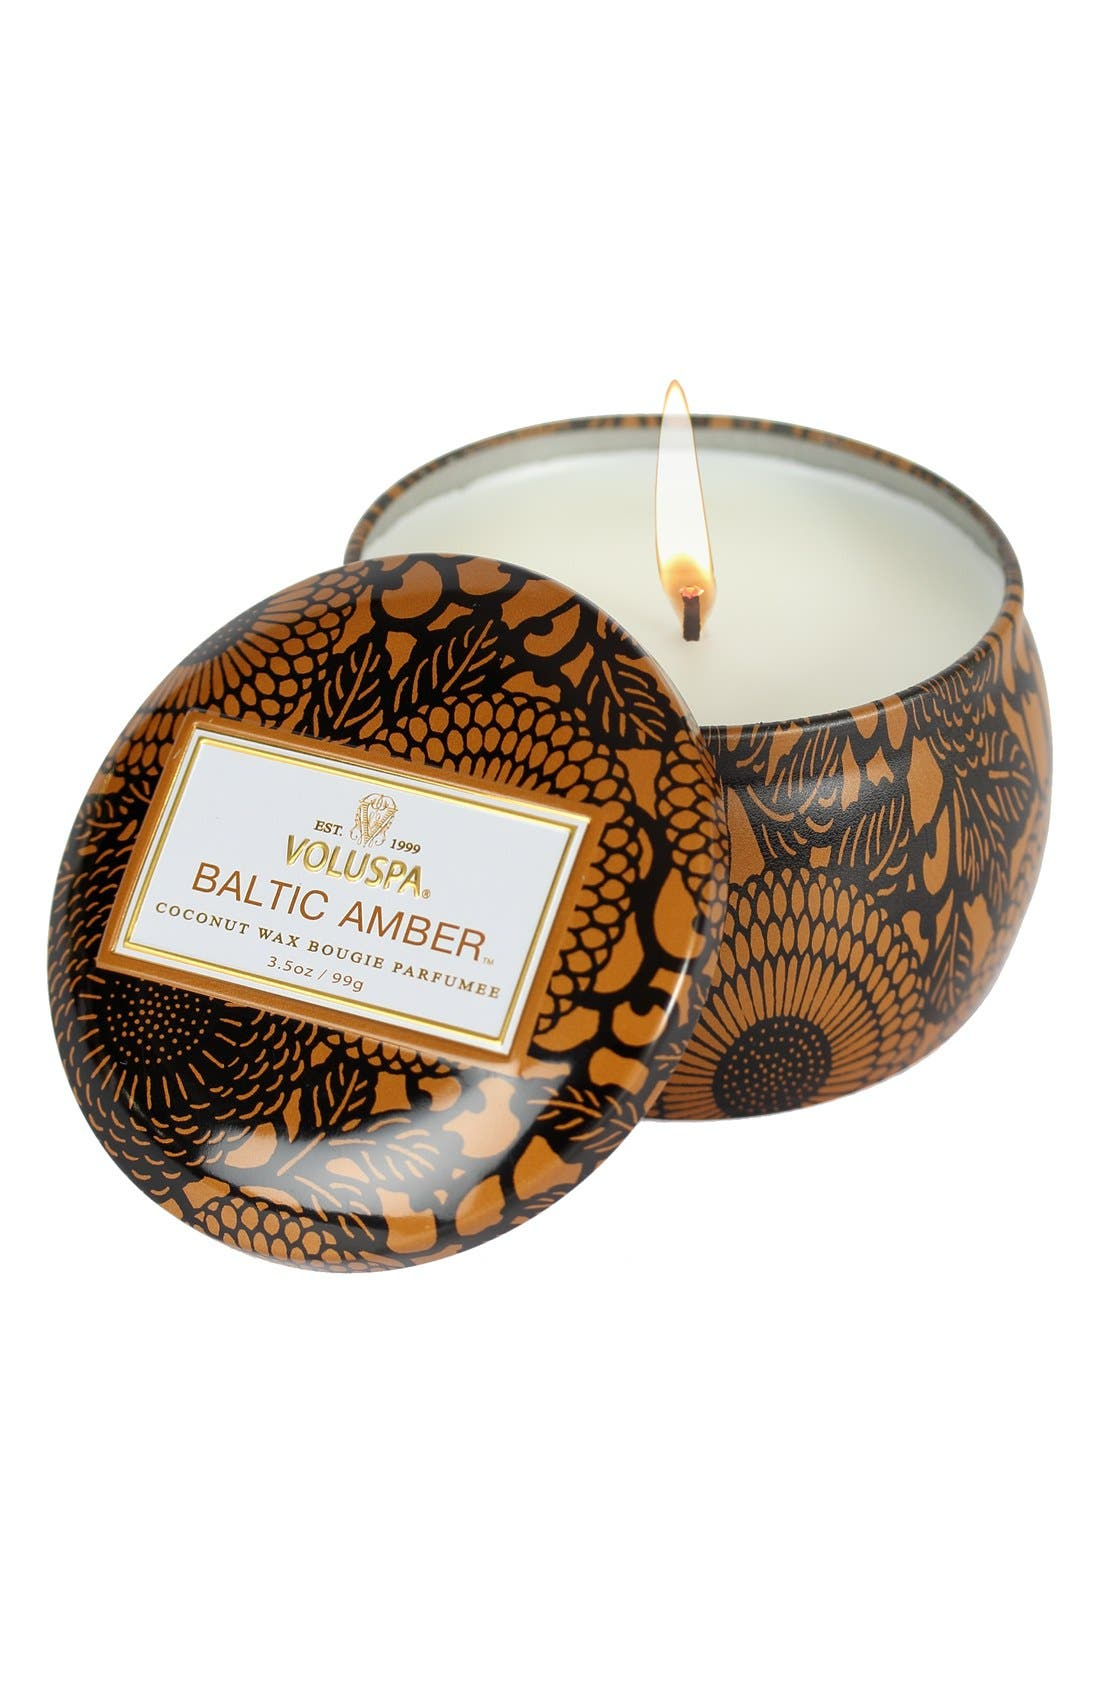 Main Image - Voluspa 'Japonica - Baltic Amber' Petite Decorative Candle